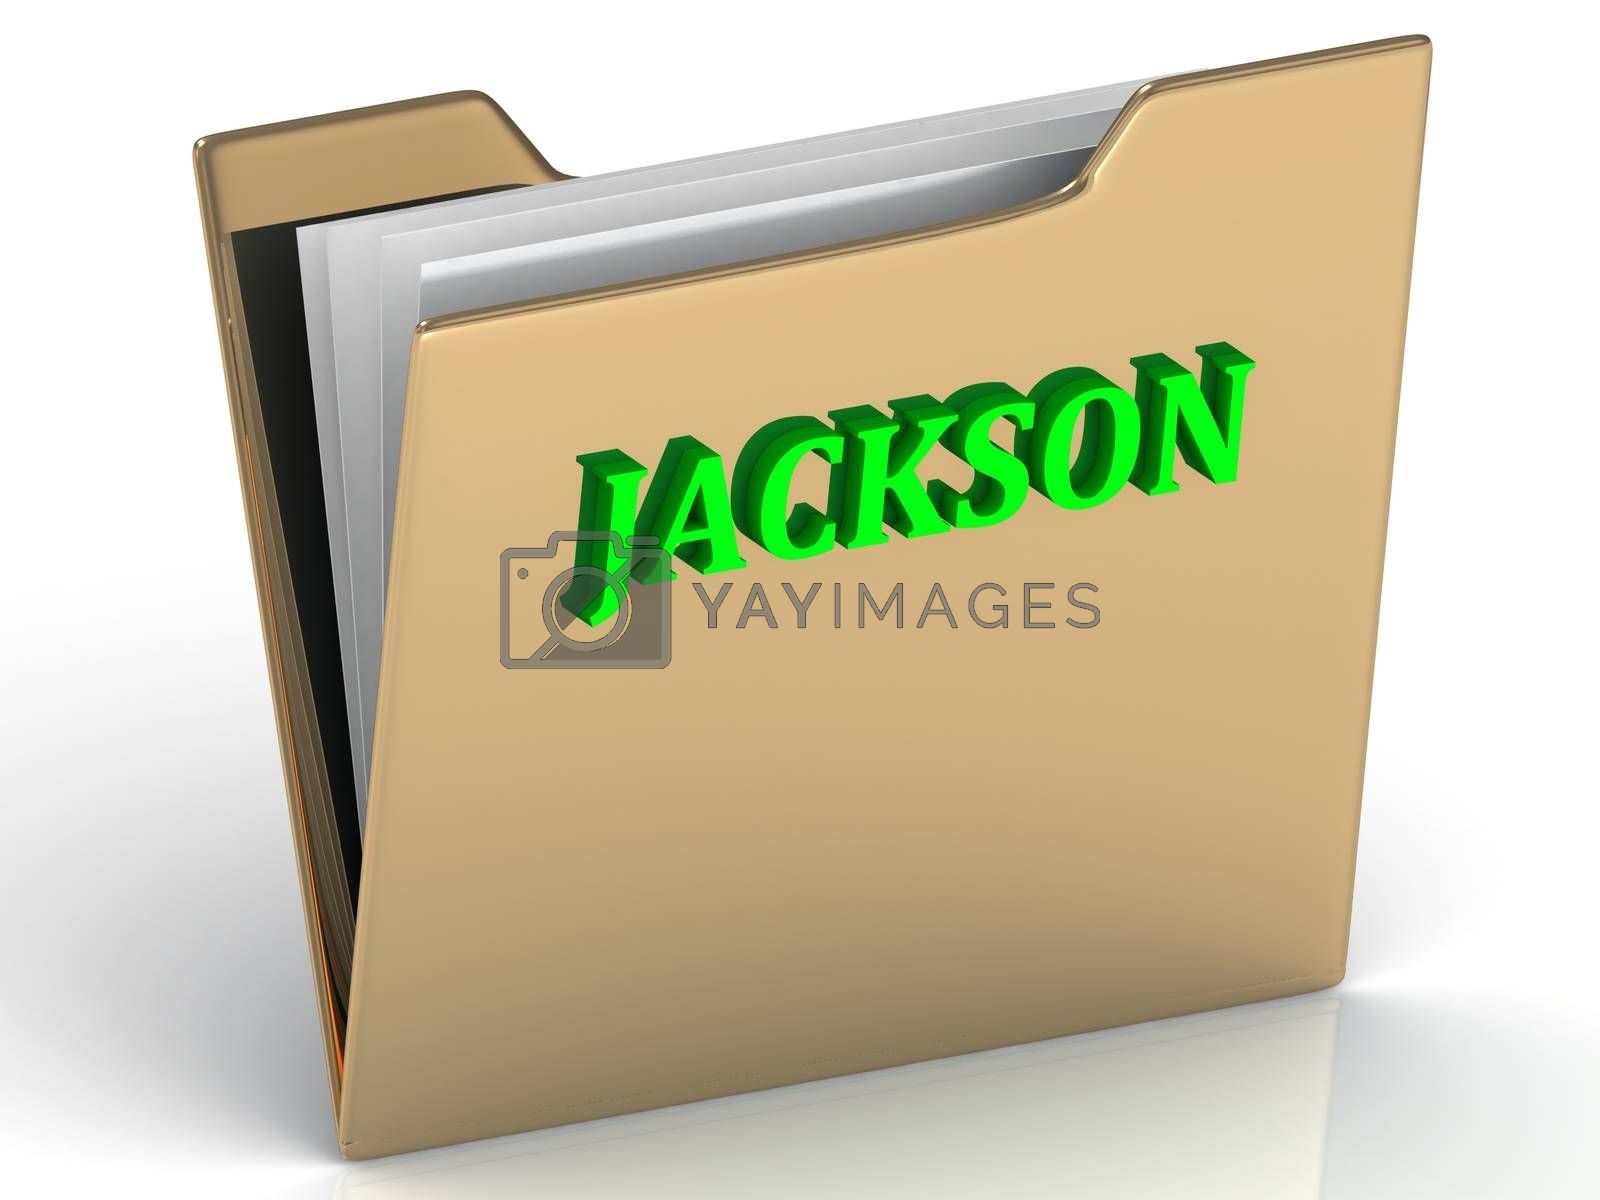 JACKSON- bright green letters on gold paperwork folder on a white background